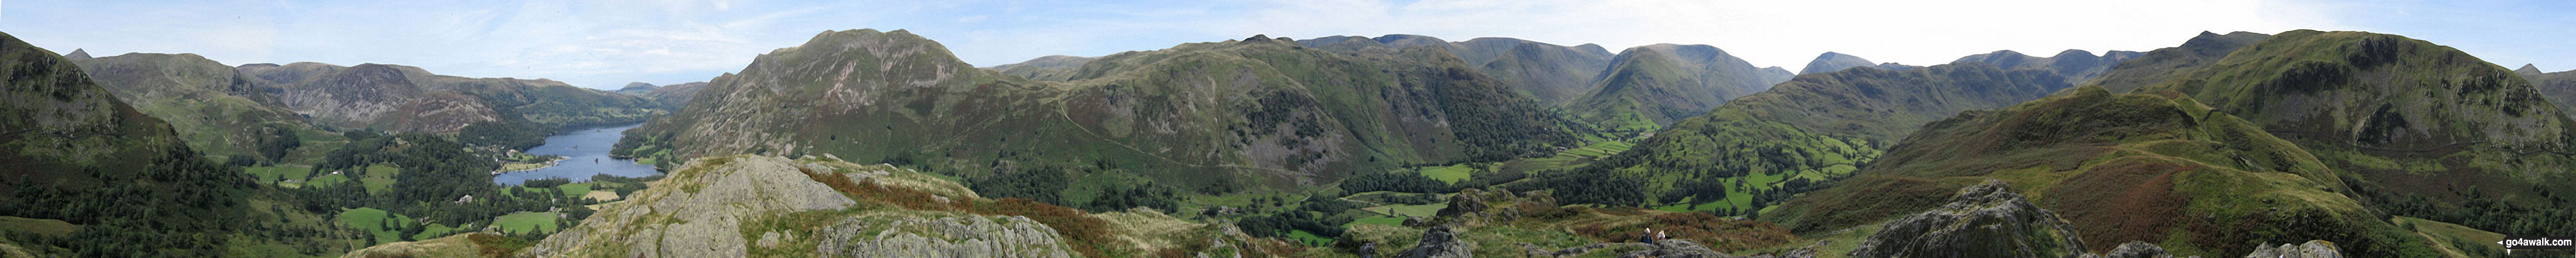 360 panorama taken from the top of Arnison Crag, Patterdale